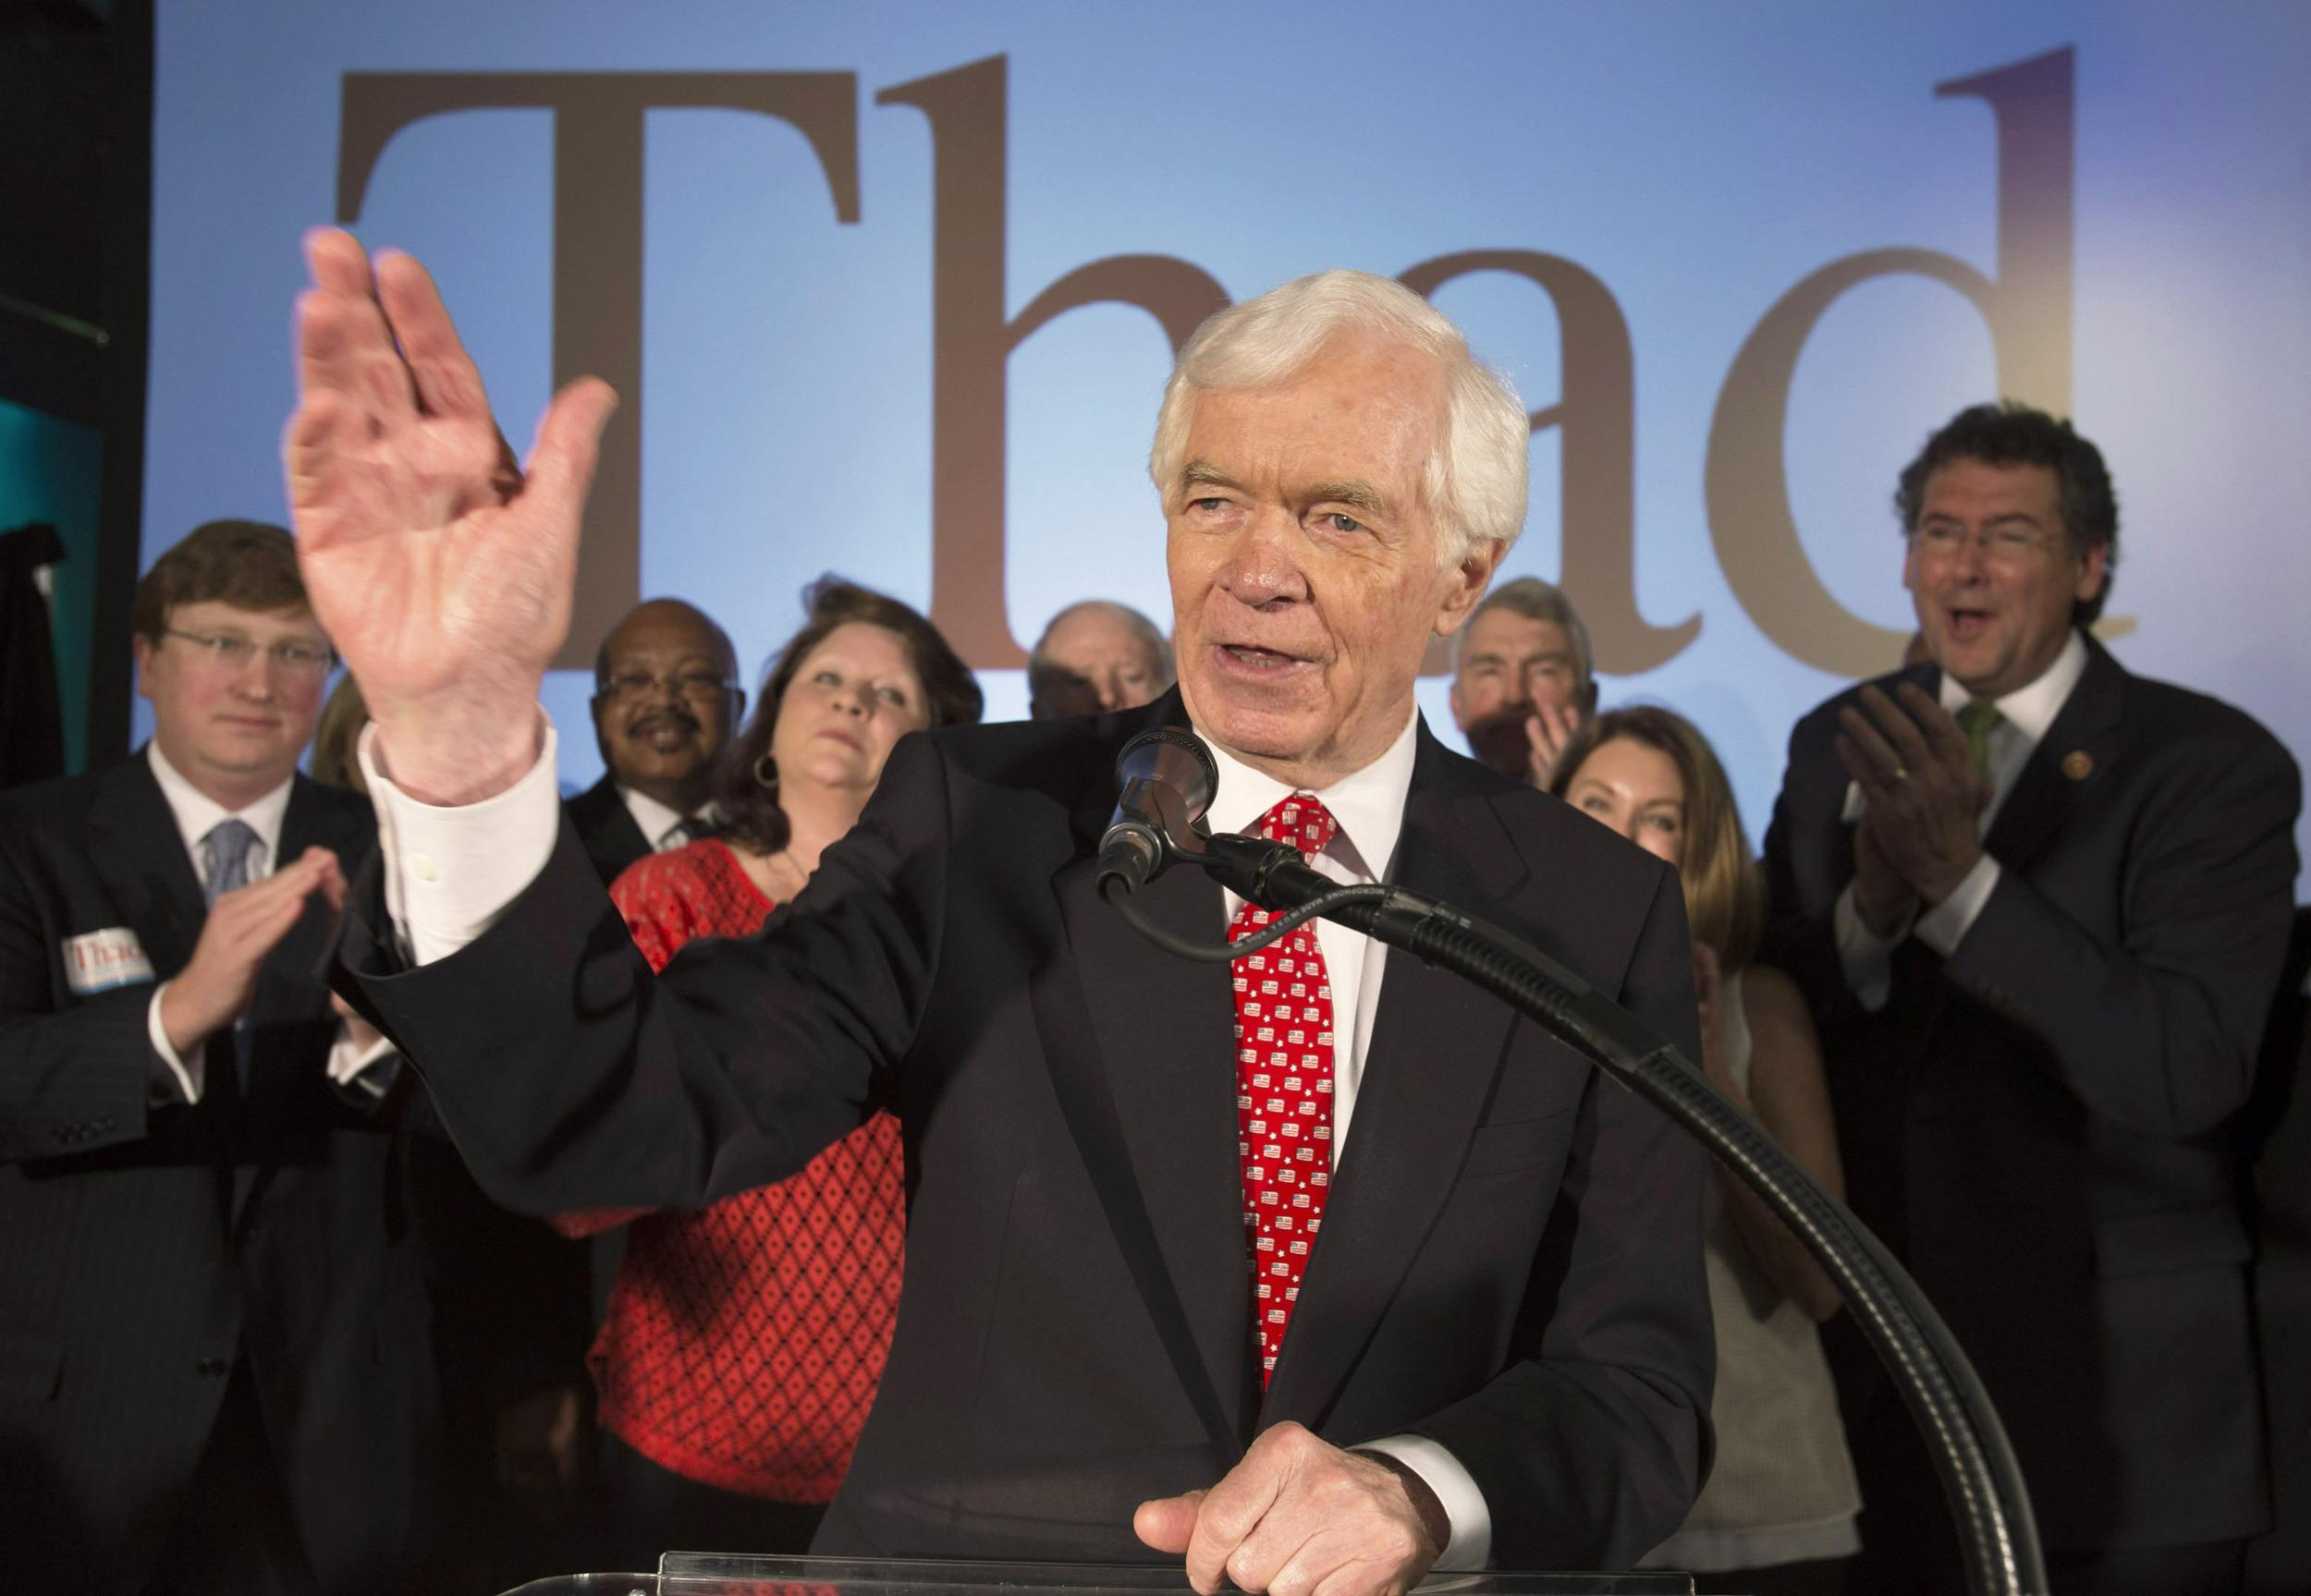 Image: Republican U.S. Senator Thad Cochran addresses supporters during an election night celebration in Jackson, Mississippi